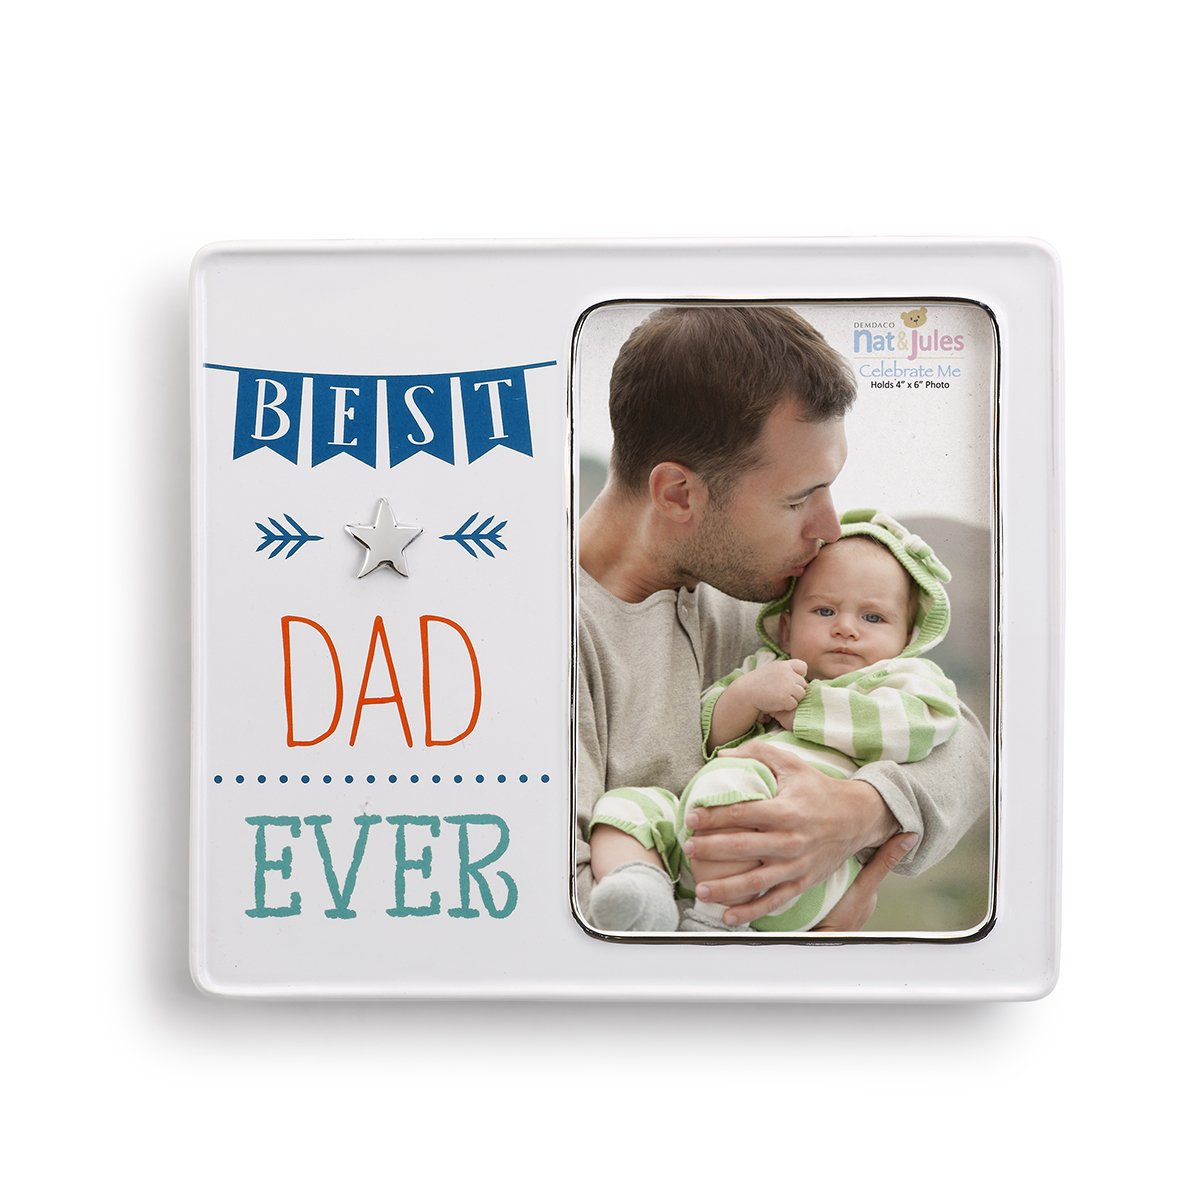 Demdaco Baby Frame, Best Dad Ever 5004700436